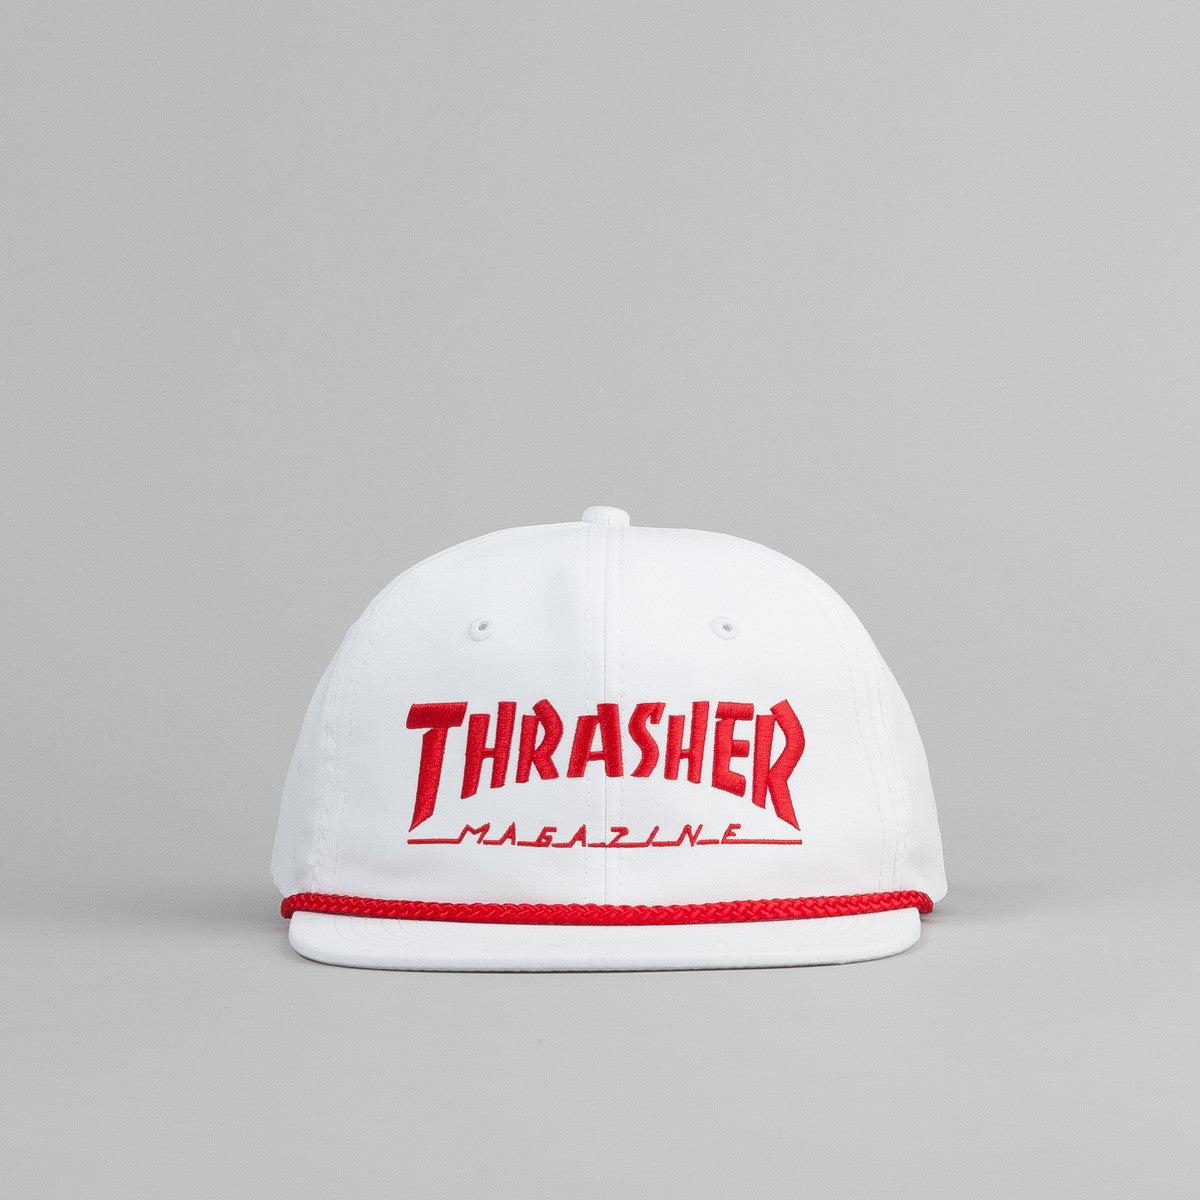 Thrasher Rope Snapback Cap - White / Red